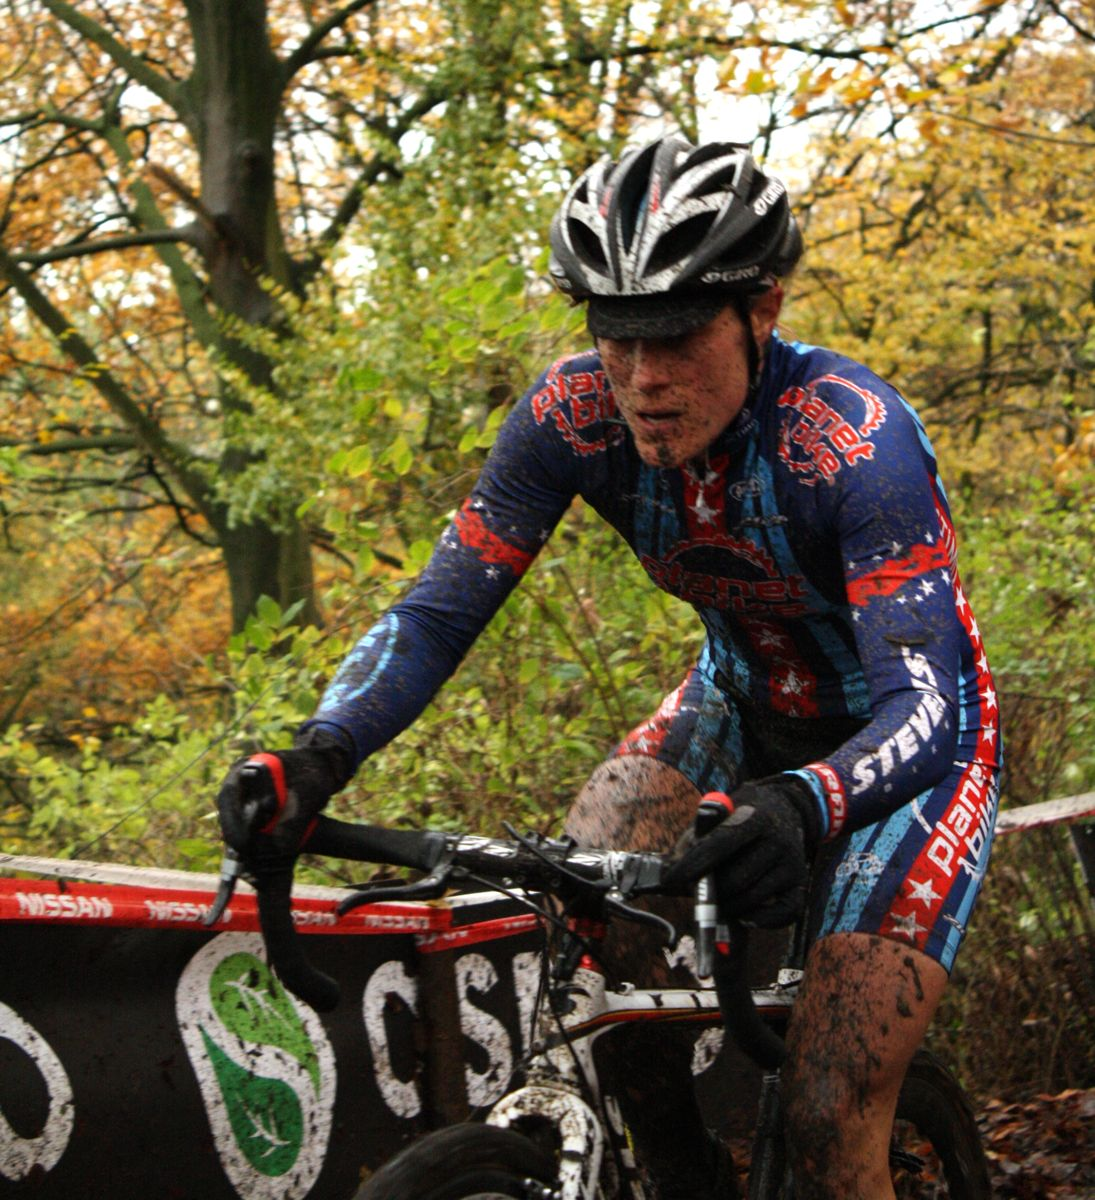 Compton conquered the mud today. ? Dan Seaton